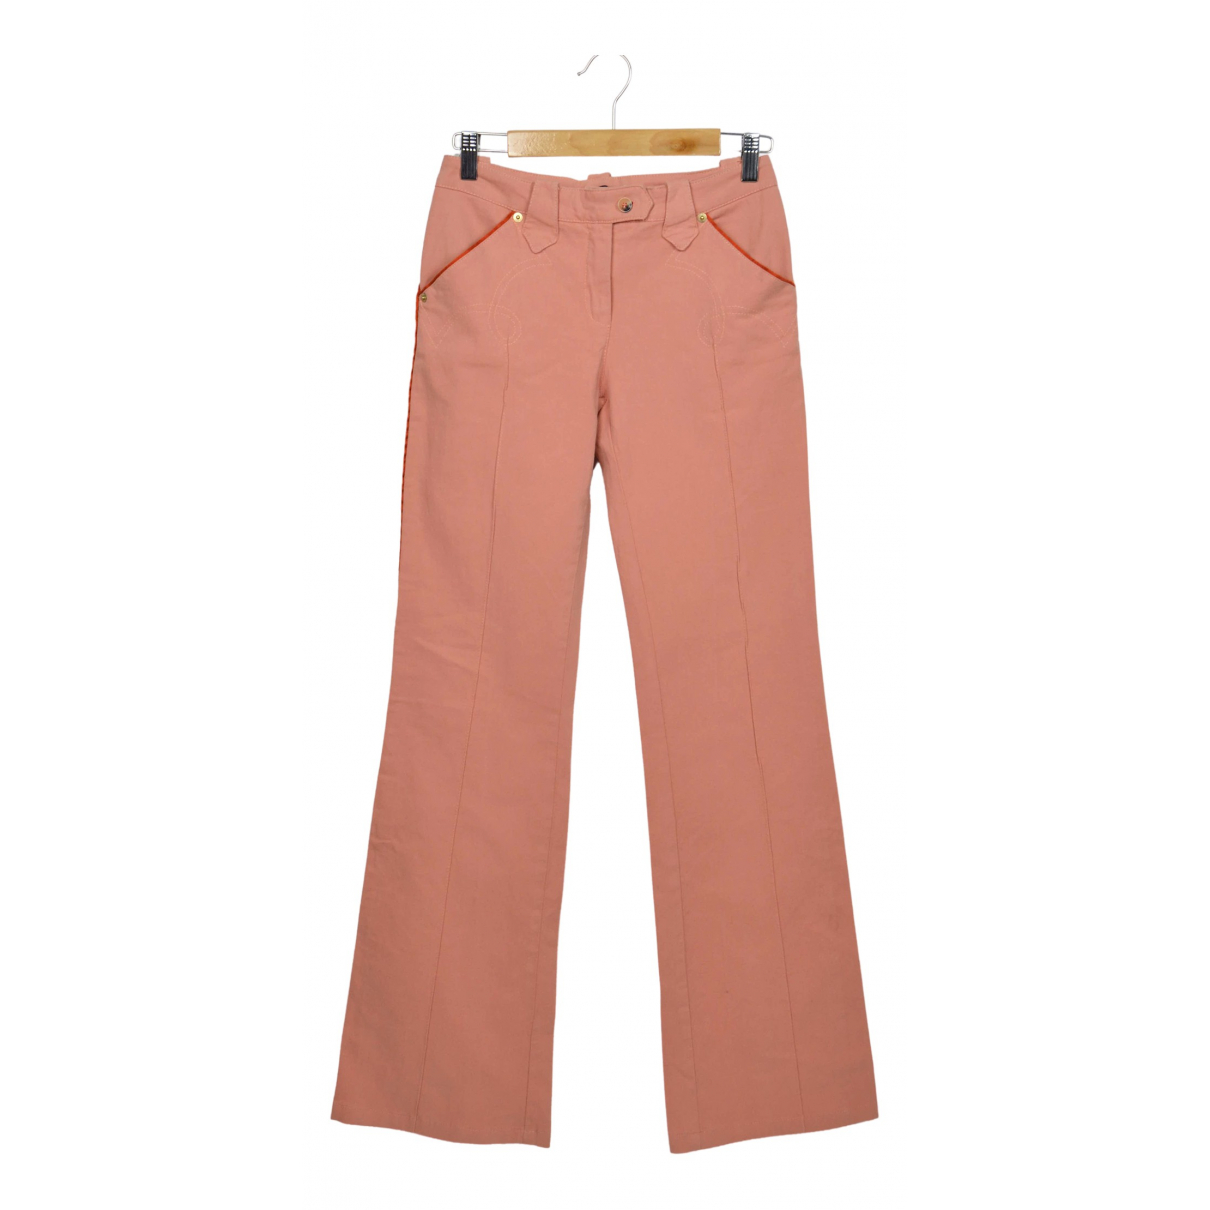 Roberto Cavalli N Pink Cotton Trousers for Women 40 IT